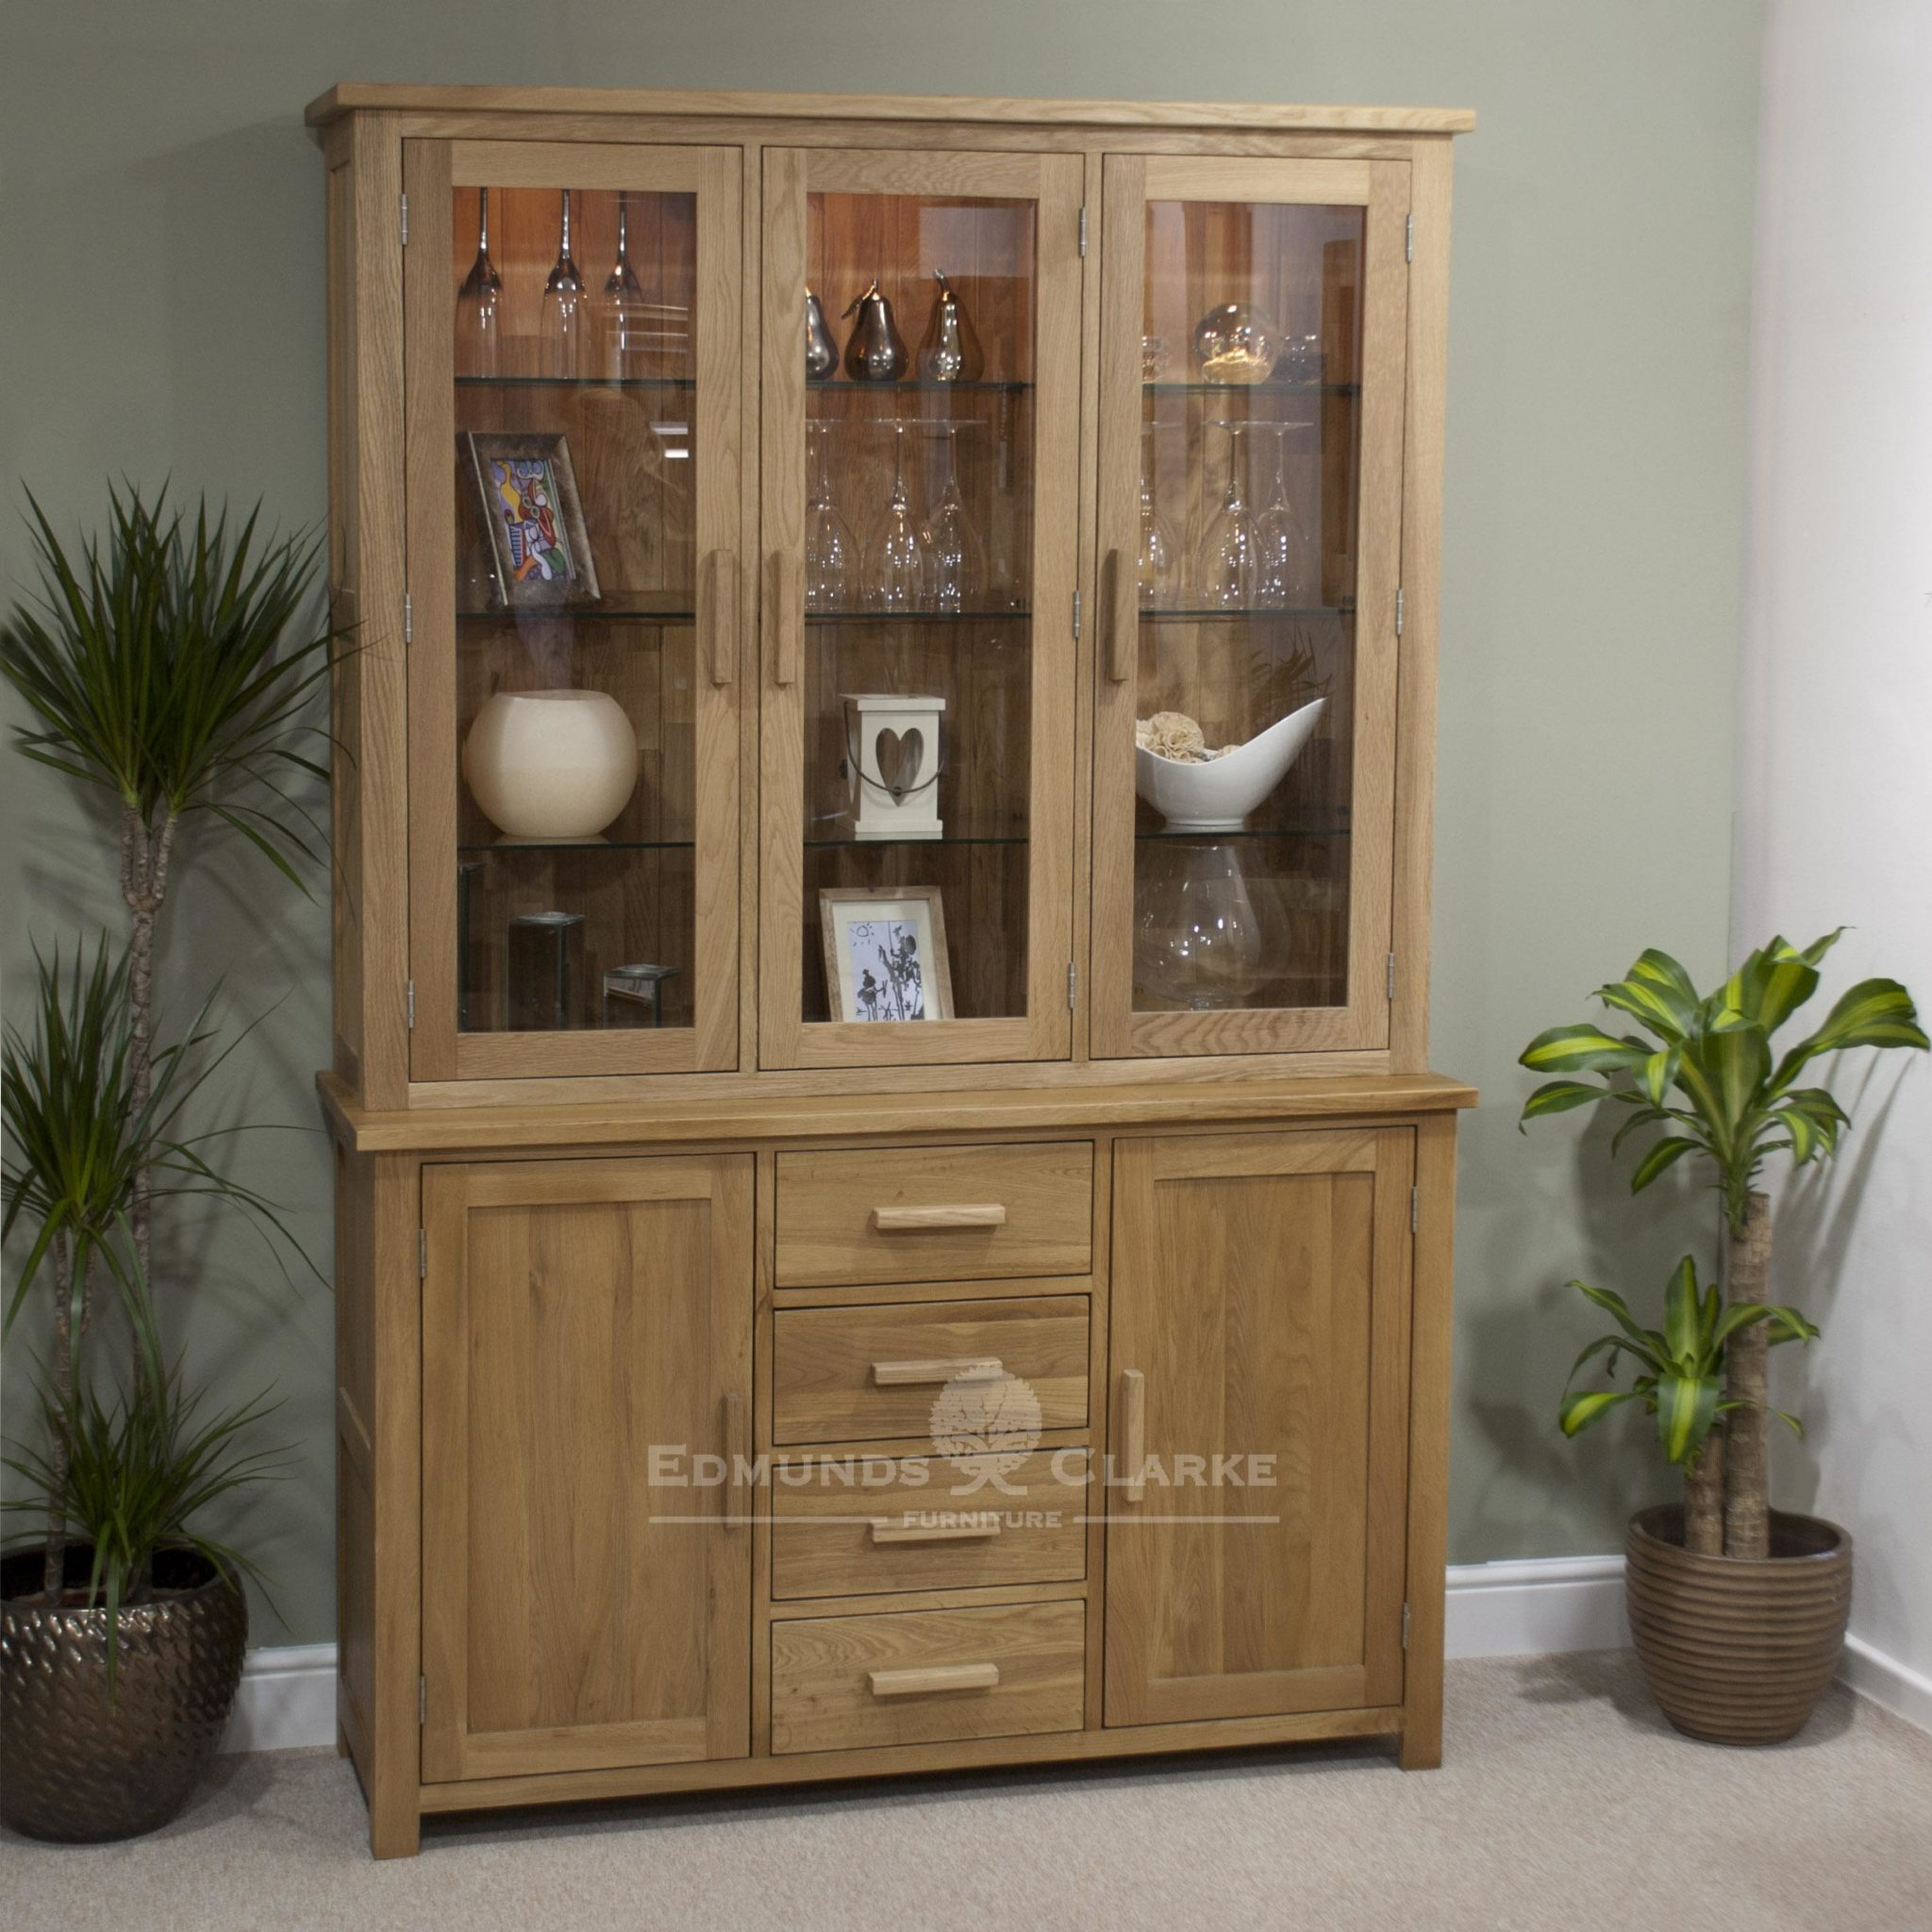 Bury Large Oak Dresser. chrome handles as stndard, oak bar handles available as optional extra. 4 centre drawers & cupboards with glass bevelled doors above and adjustable glass shelves